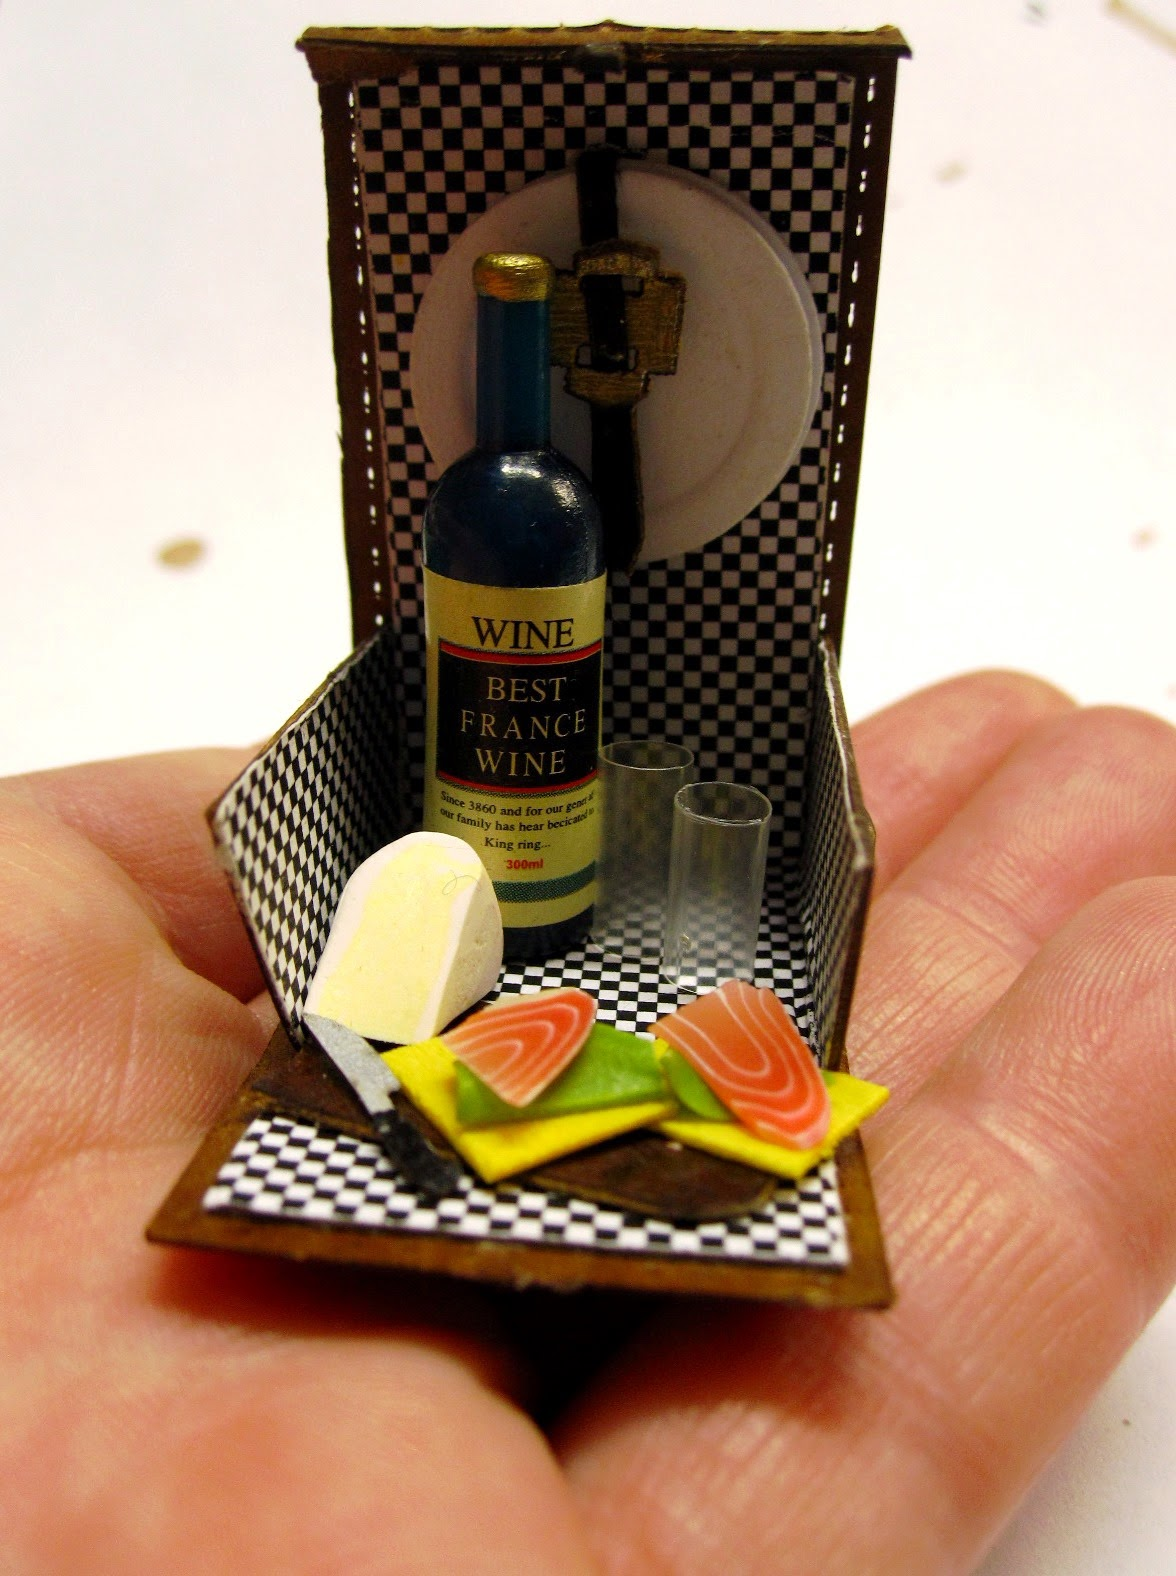 A miniature picnic hamper with black and white checked lining, holding a bottle of wine, two glasses, two smoked salmon sandwiches and a wedge of camenbert, displayed on an outstretched hand.